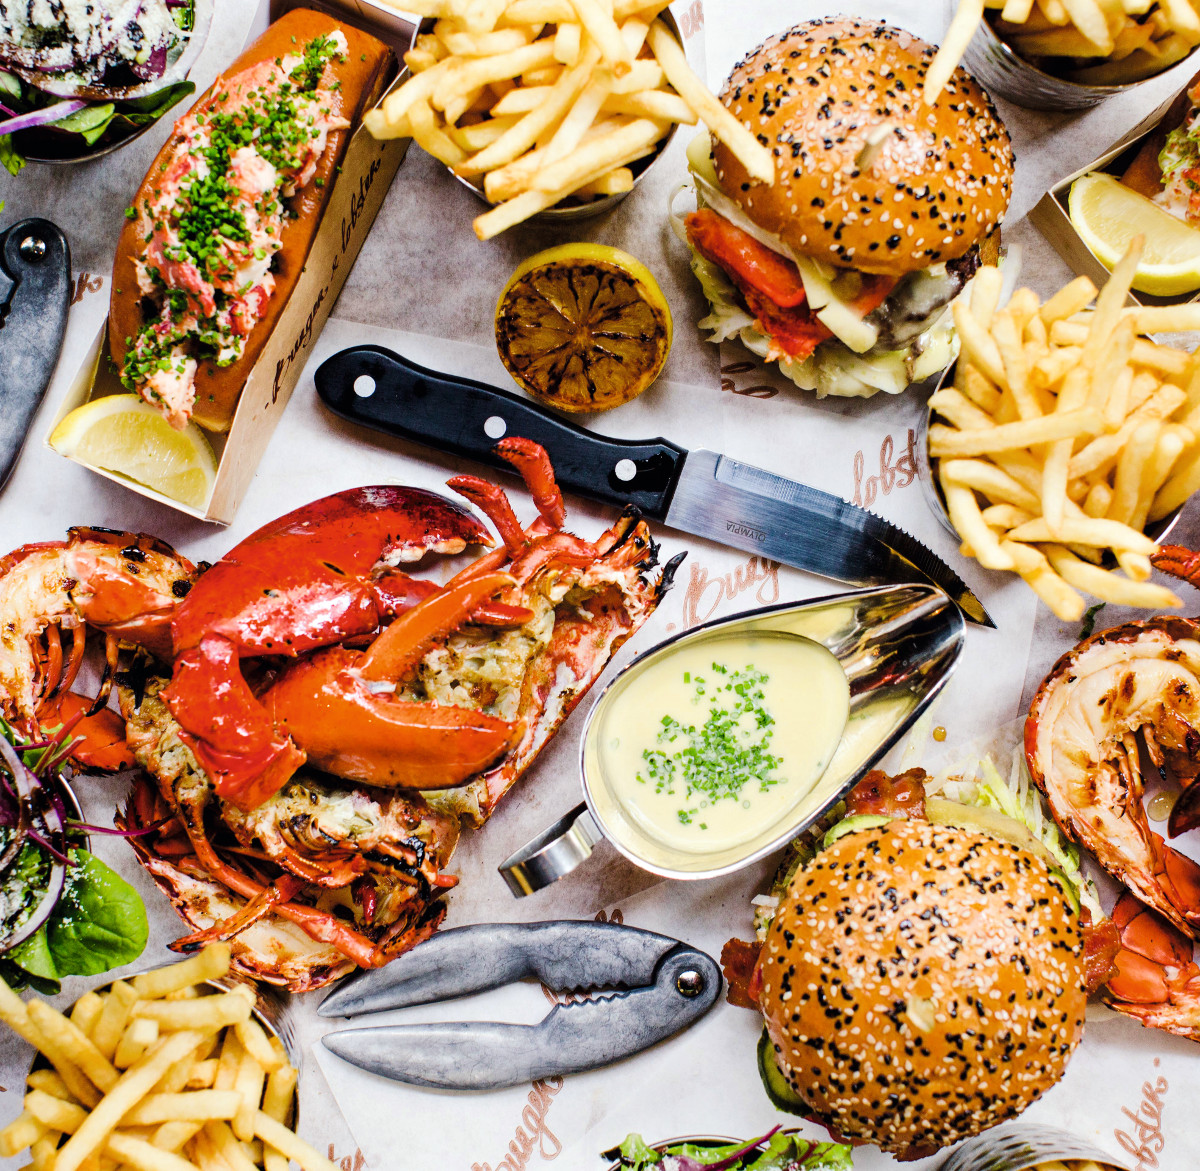 Fries on the side at Burger and Lobster, as reproduced in The World is Your Burger